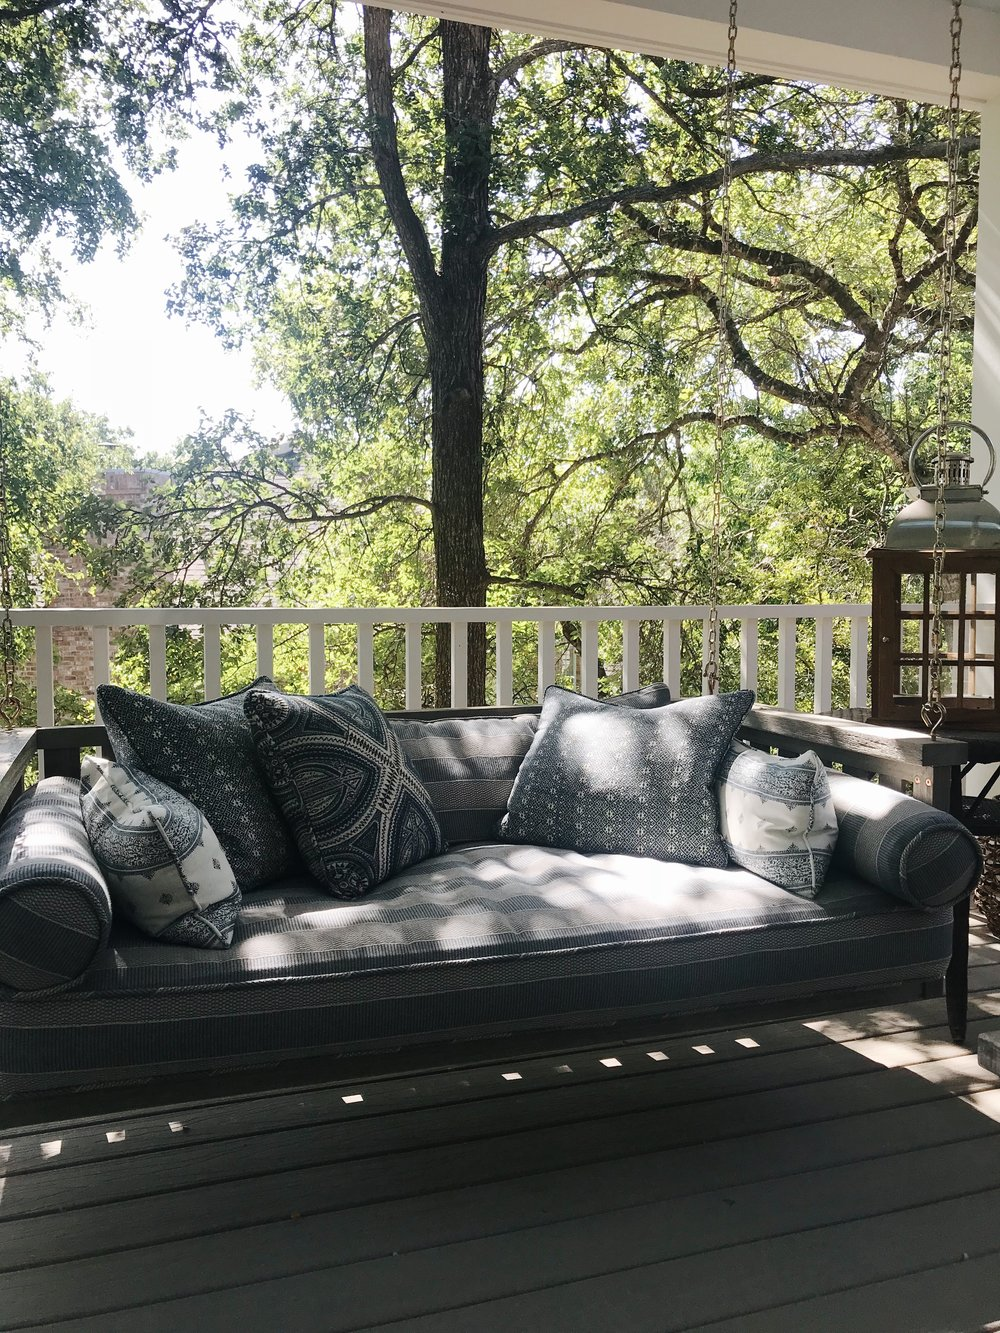 Avery Cox Design Blog: Southern Living 2018 Austin Idea House by Meredith Ellis, Exterior Porch